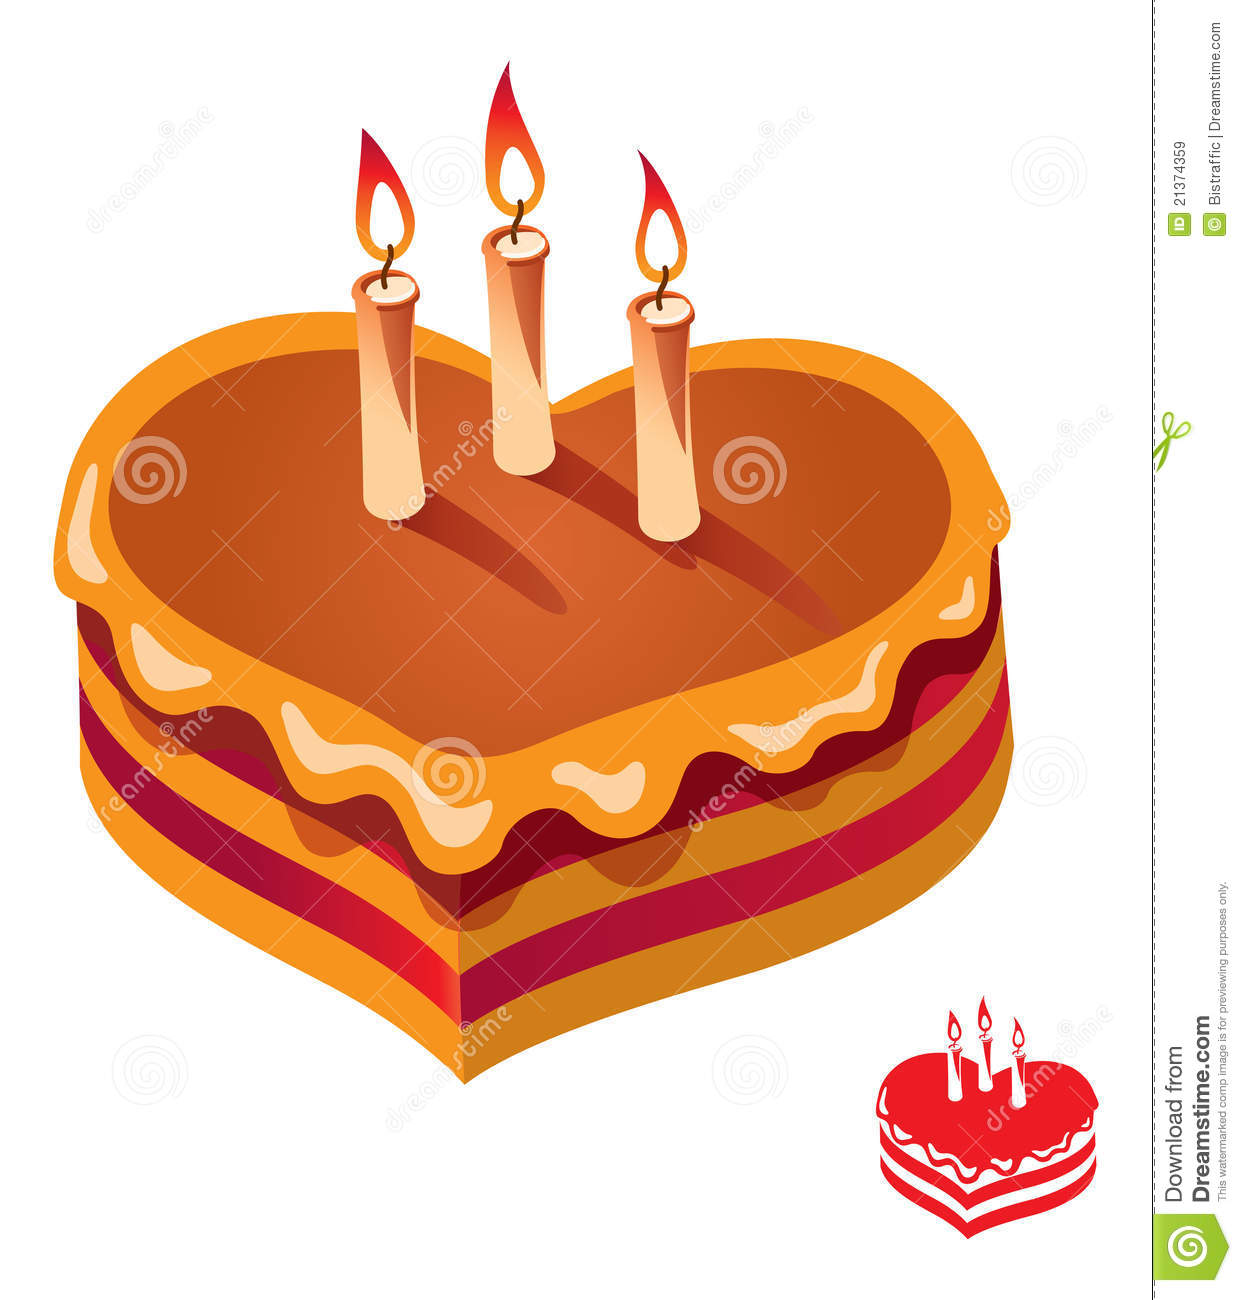 Birthday Cake Vector Illustration Royalty Free Stock ...